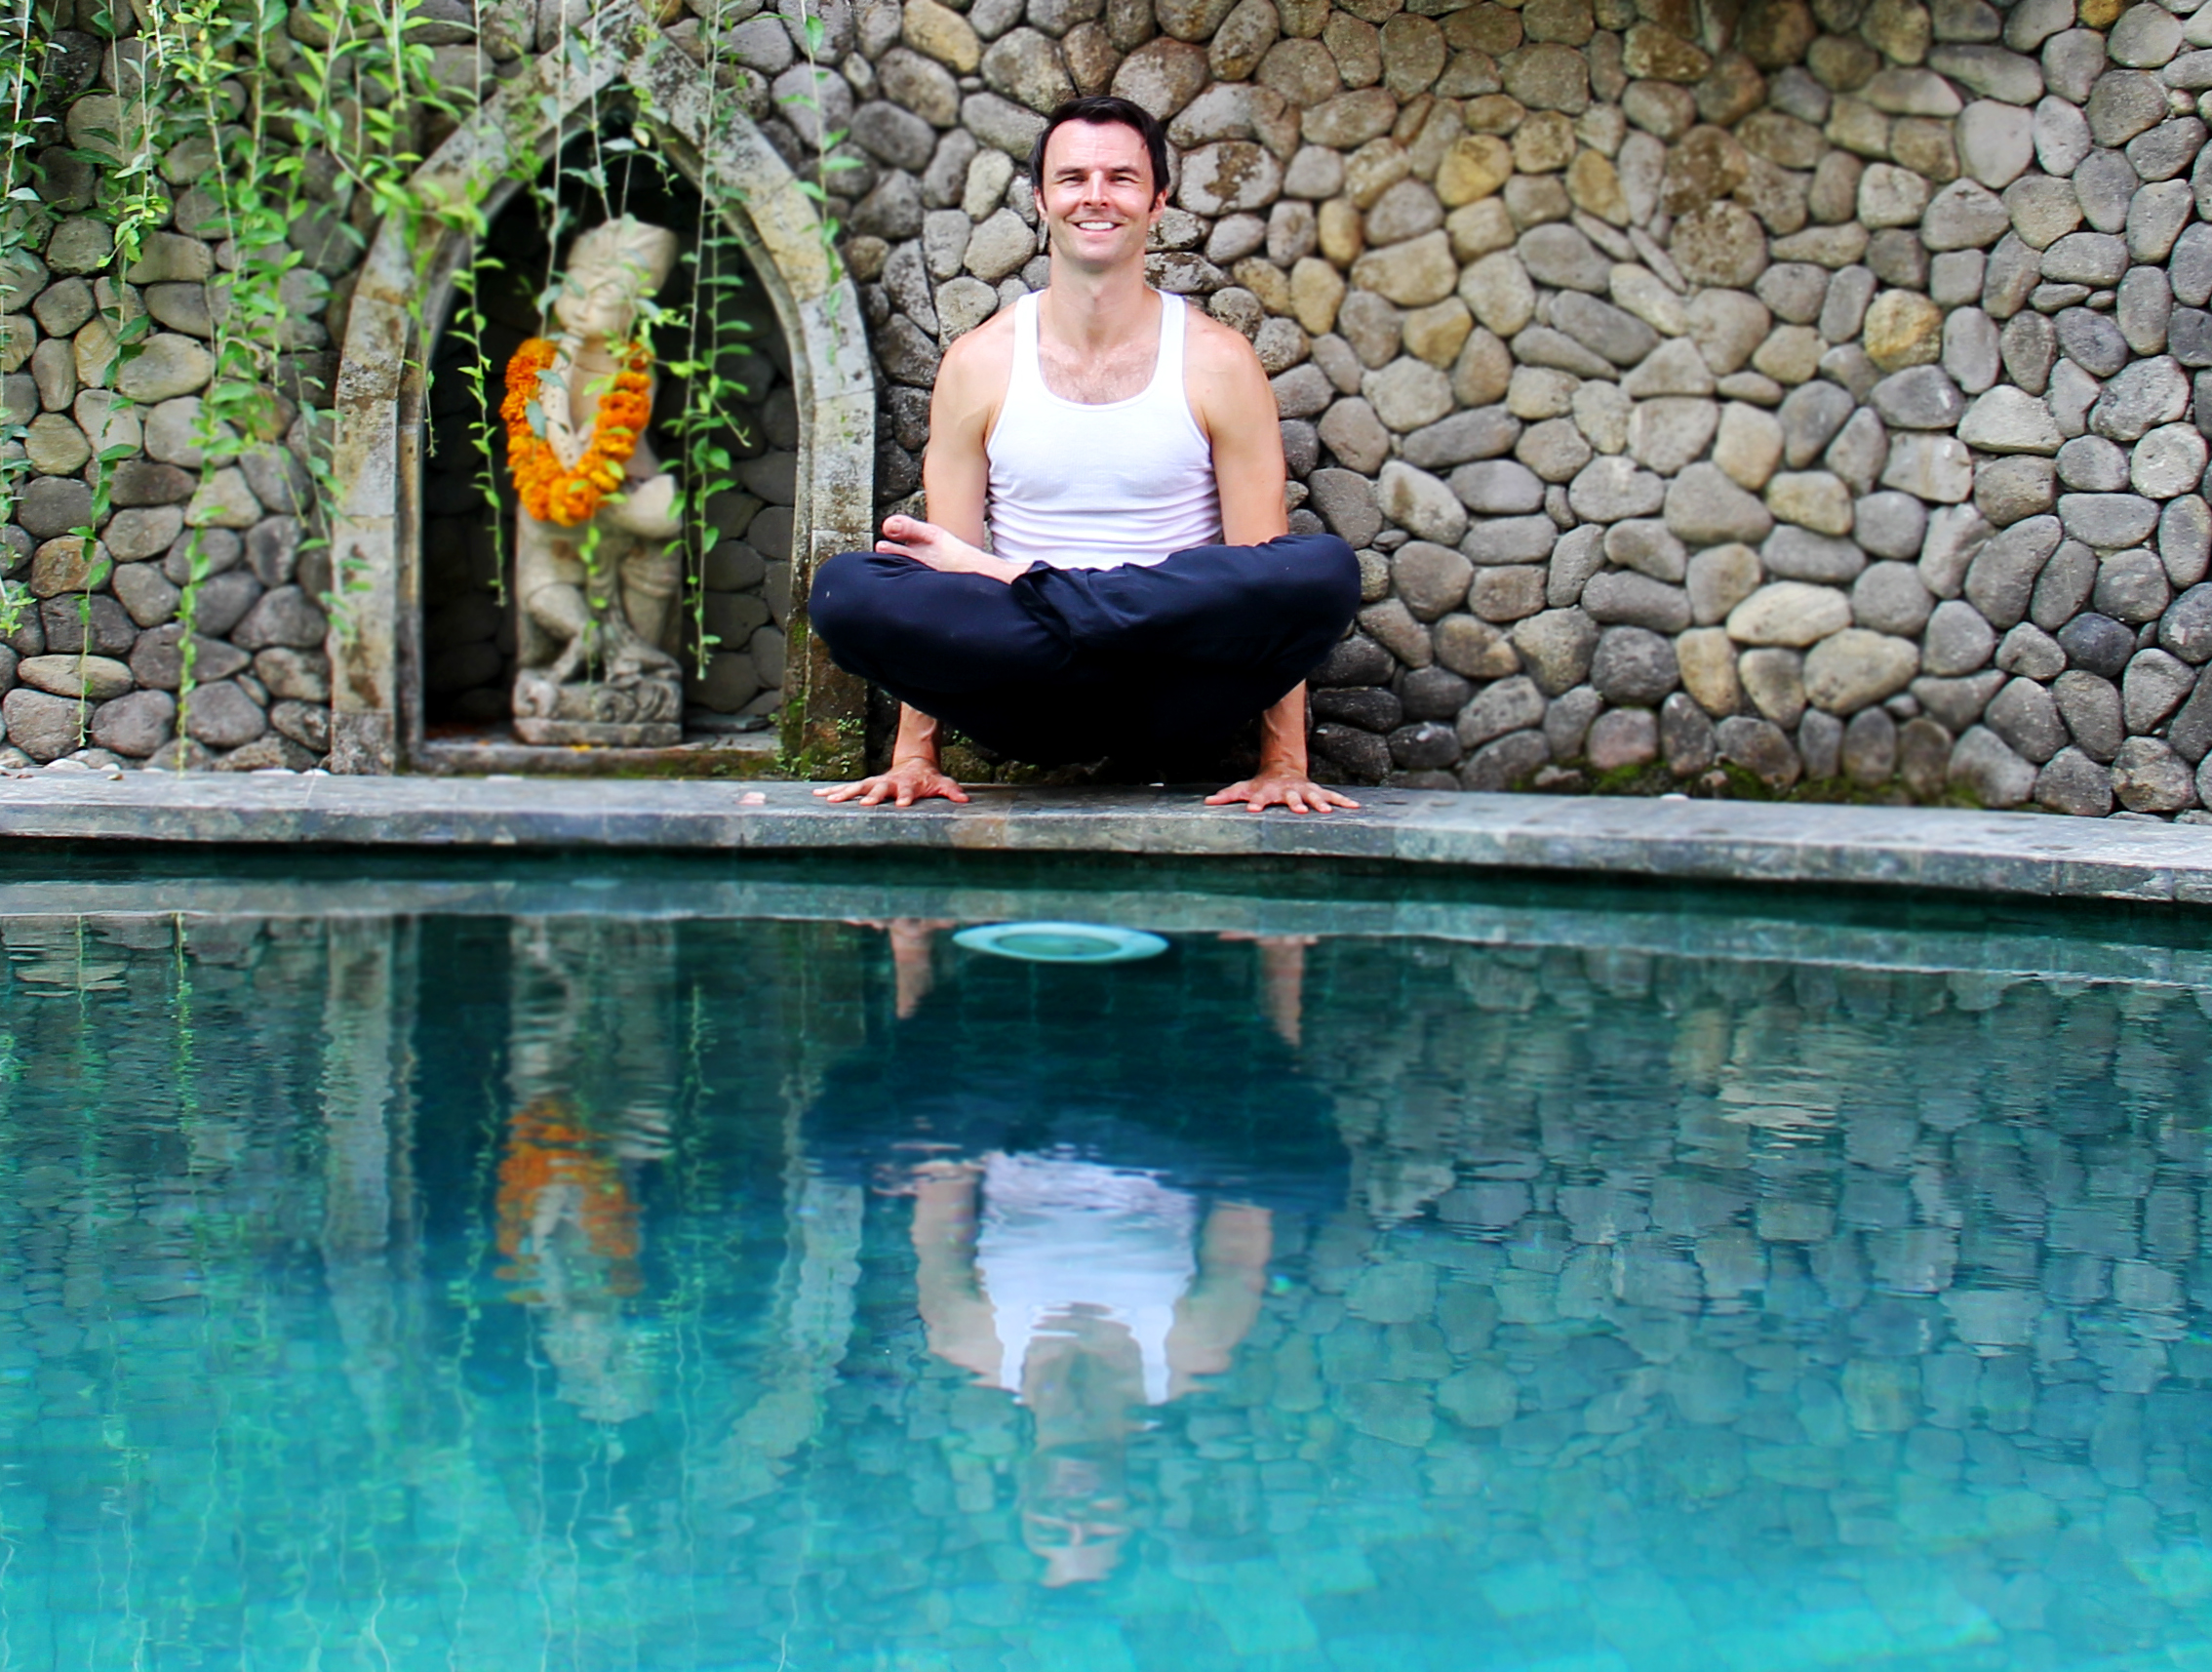 Tolasana - By the Pool with Reflection.jpg